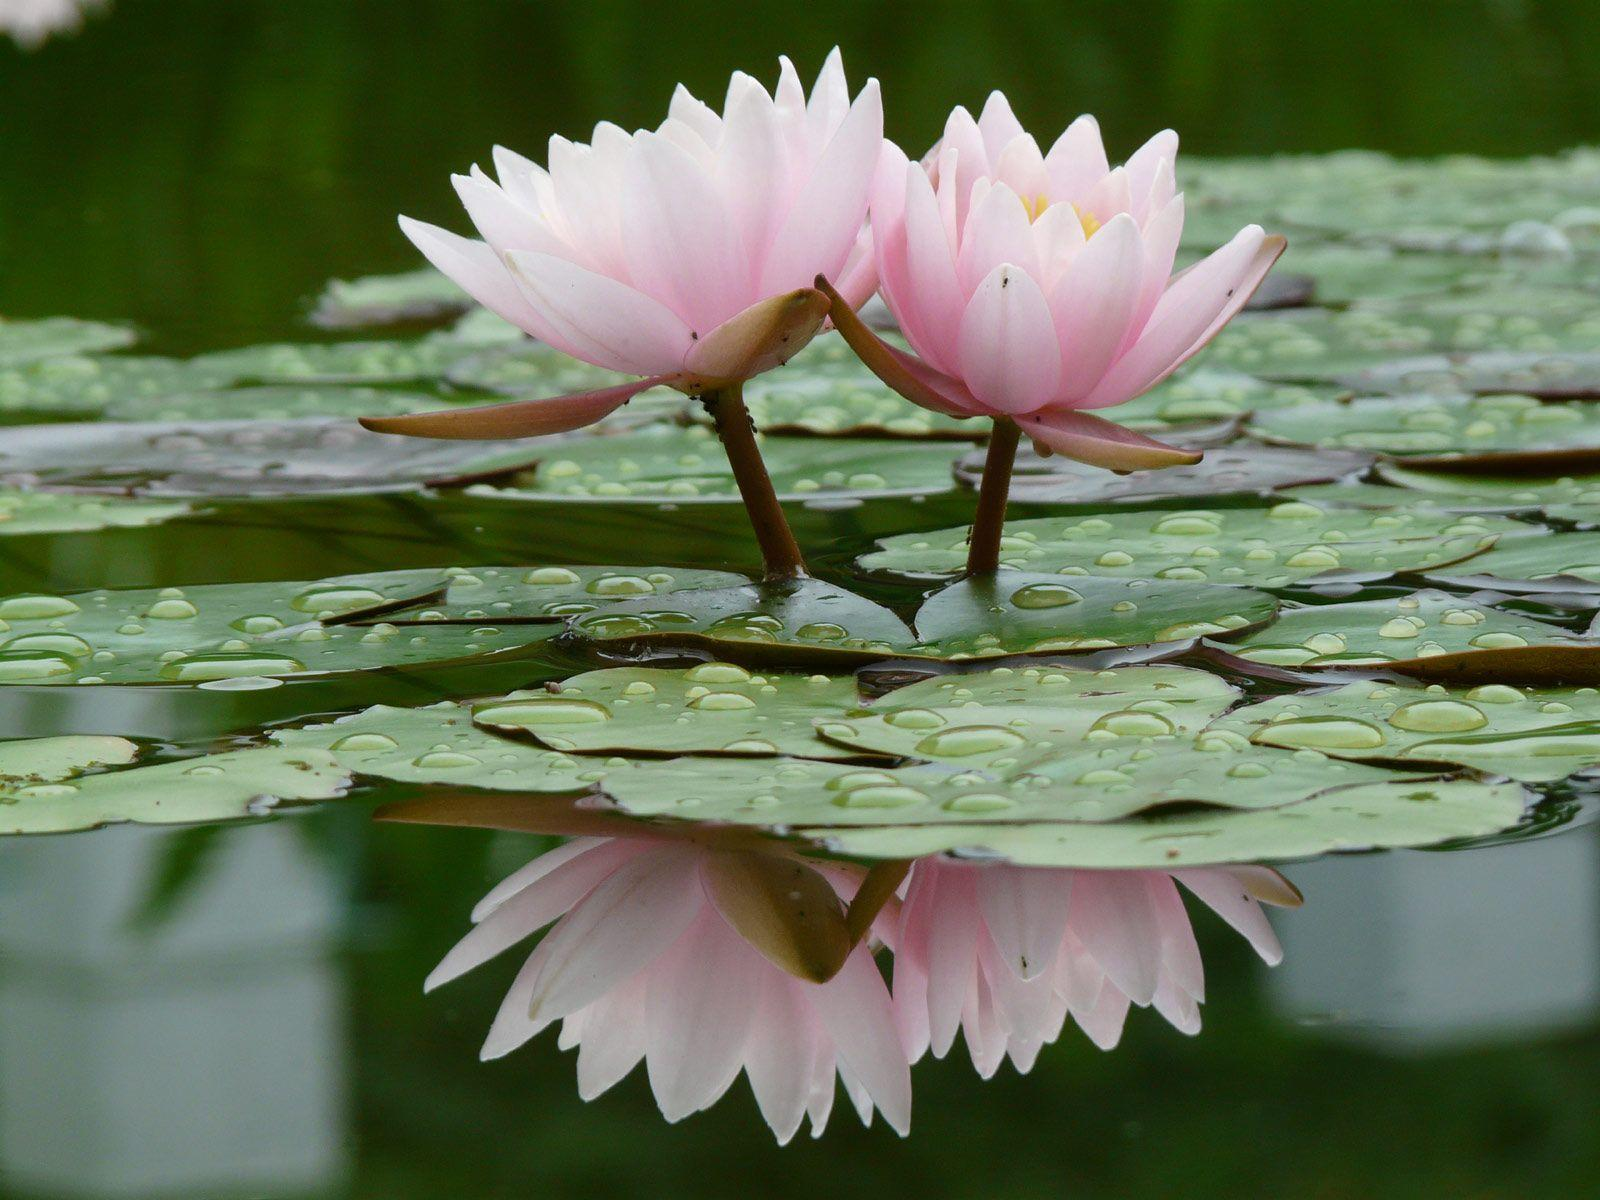 Water Lily Flower HD Wallpapers | Pictures of Water Lily Flowers .